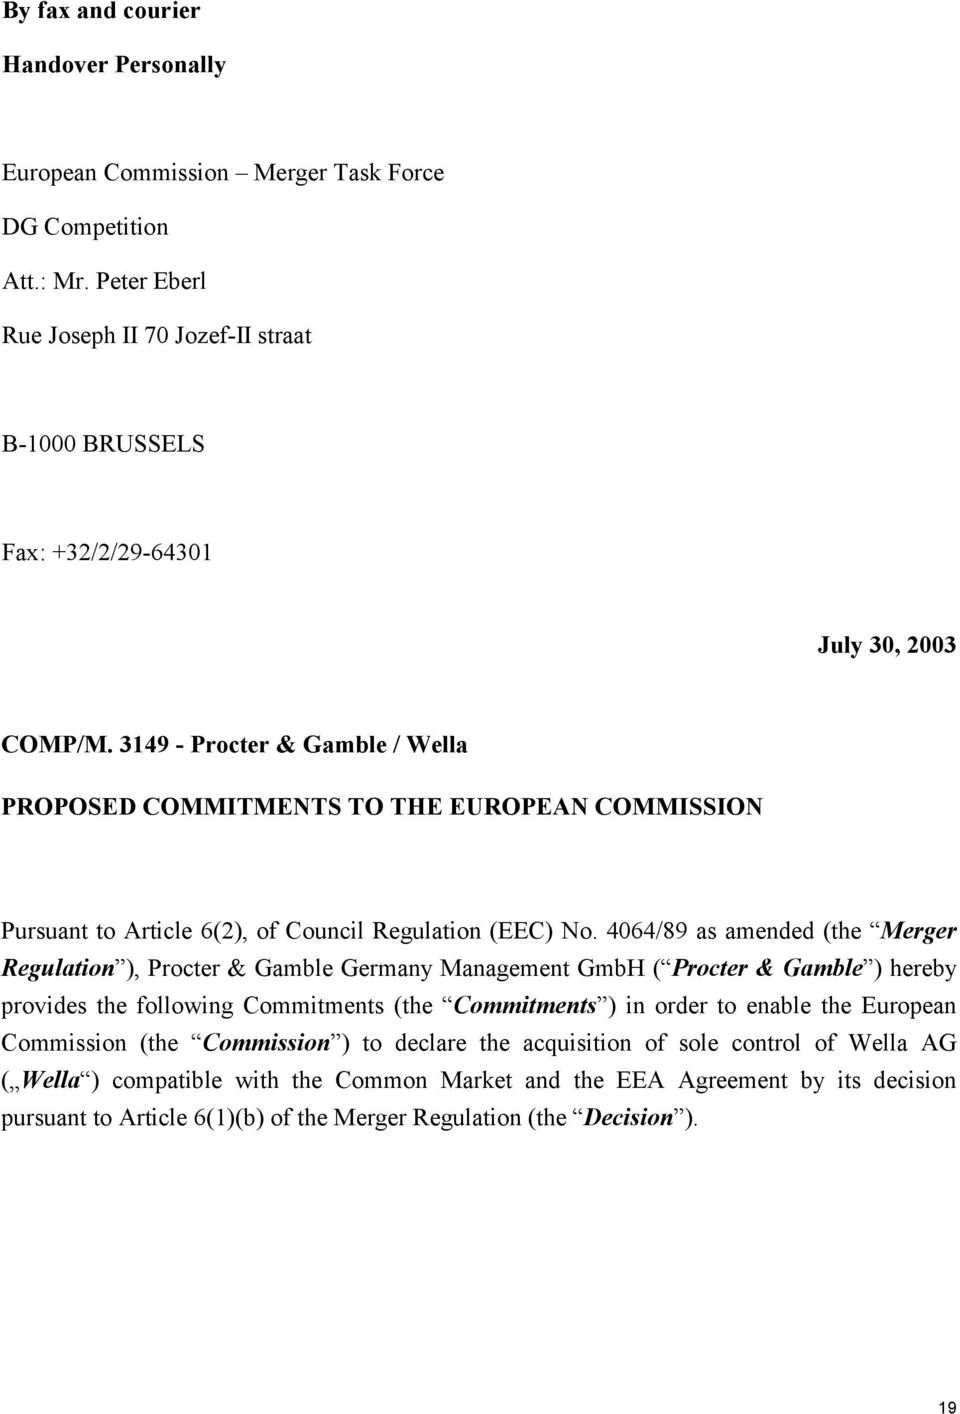 3149 - Procter & Gamble / Wella PROPOSED COMMITMENTS TO THE EUROPEAN COMMISSION Pursuant to Article 6(2), of Council Regulation (EEC) No.